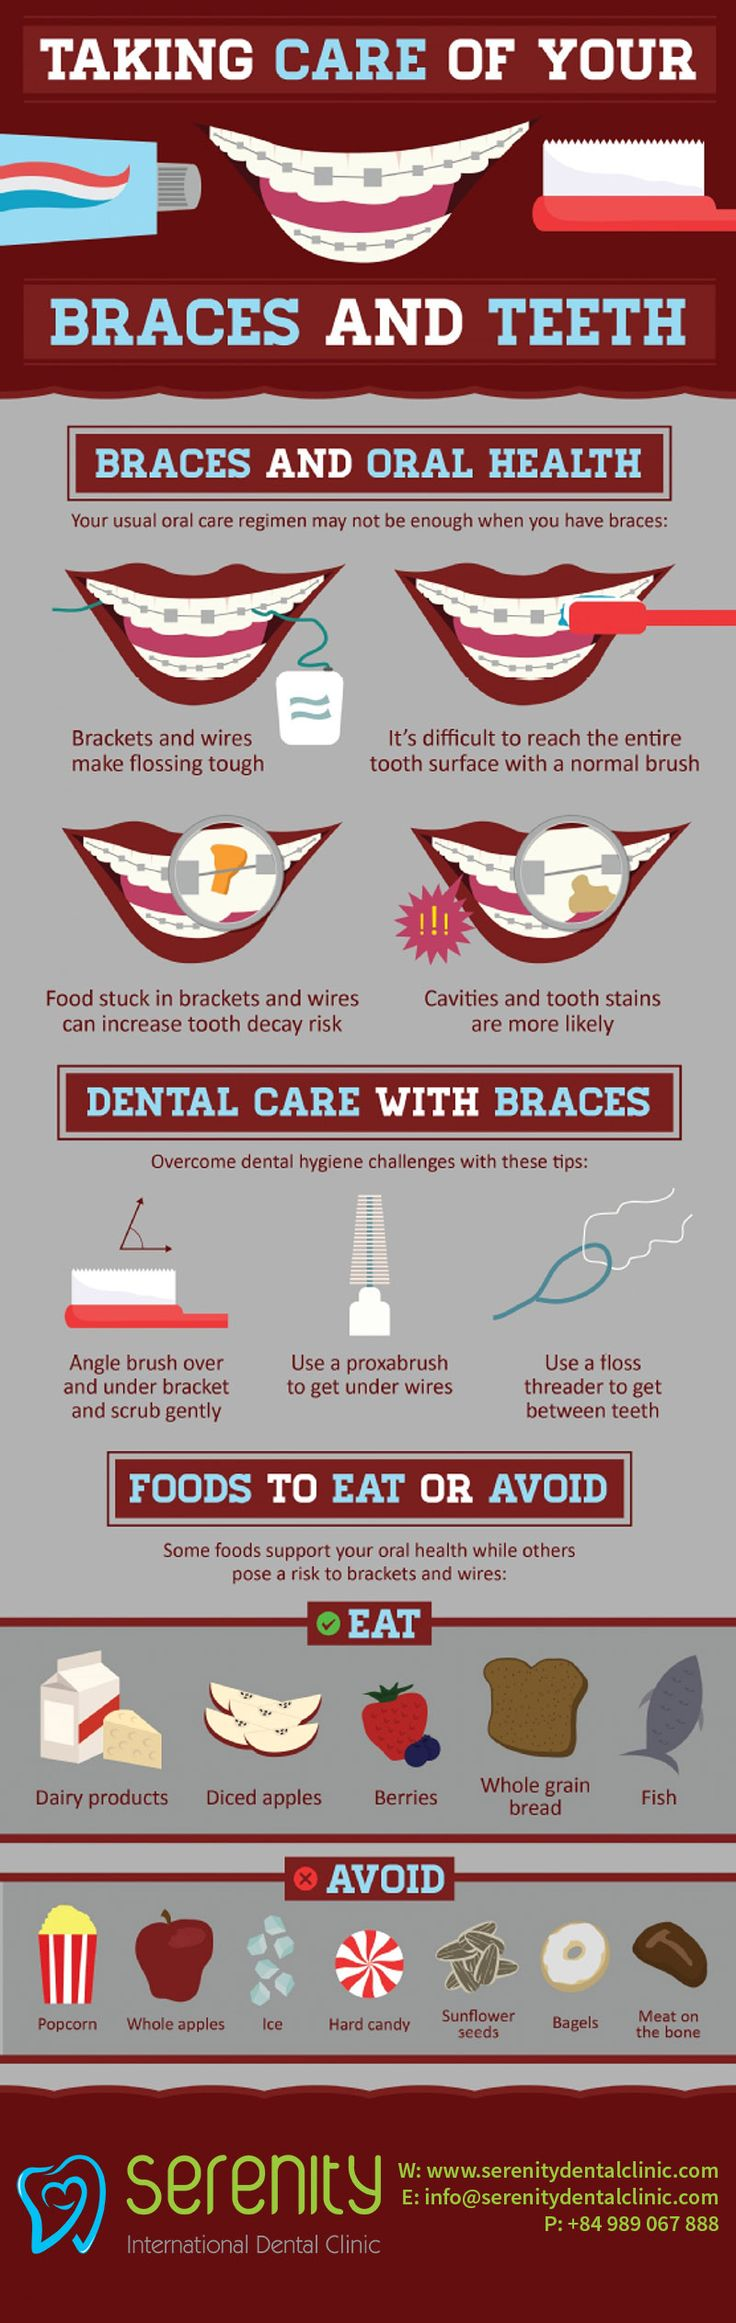 Learning how to take care of braces can take some practice when you first get them. But don't worry; it's not hard, it's just a case of doing things a little differently from pre-brace times.